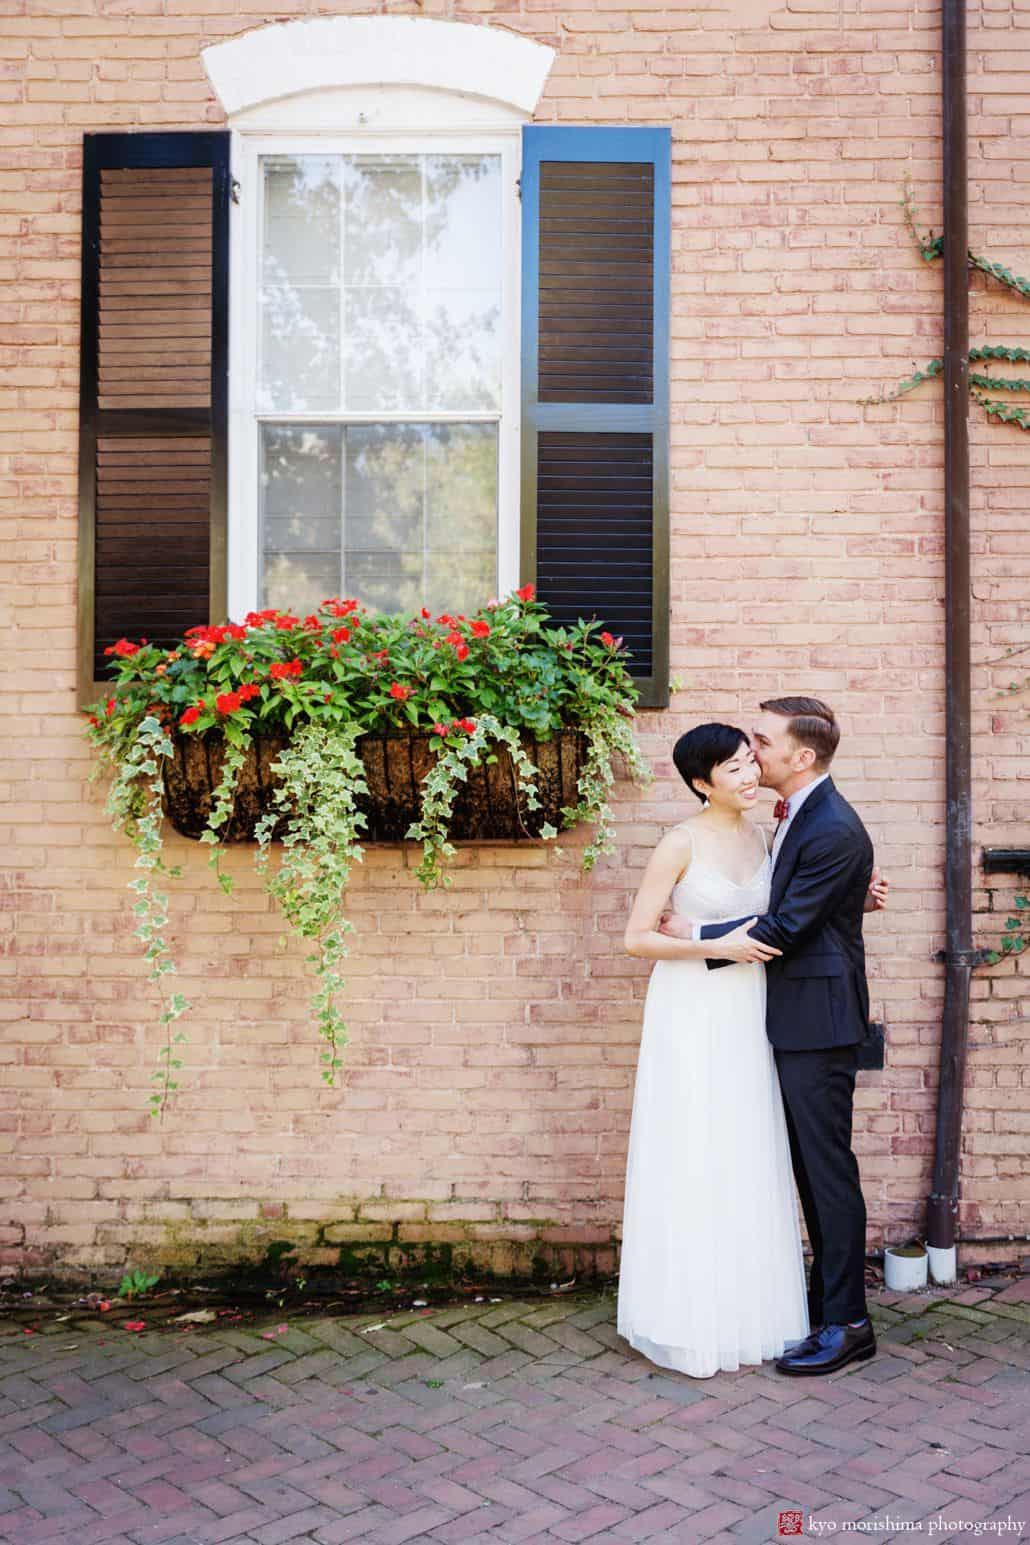 Bride and groom portrait against brick wall in Old Town Alexandria before their ceremony at small unique wedding venue Carlyle House in Old Town Alexandria